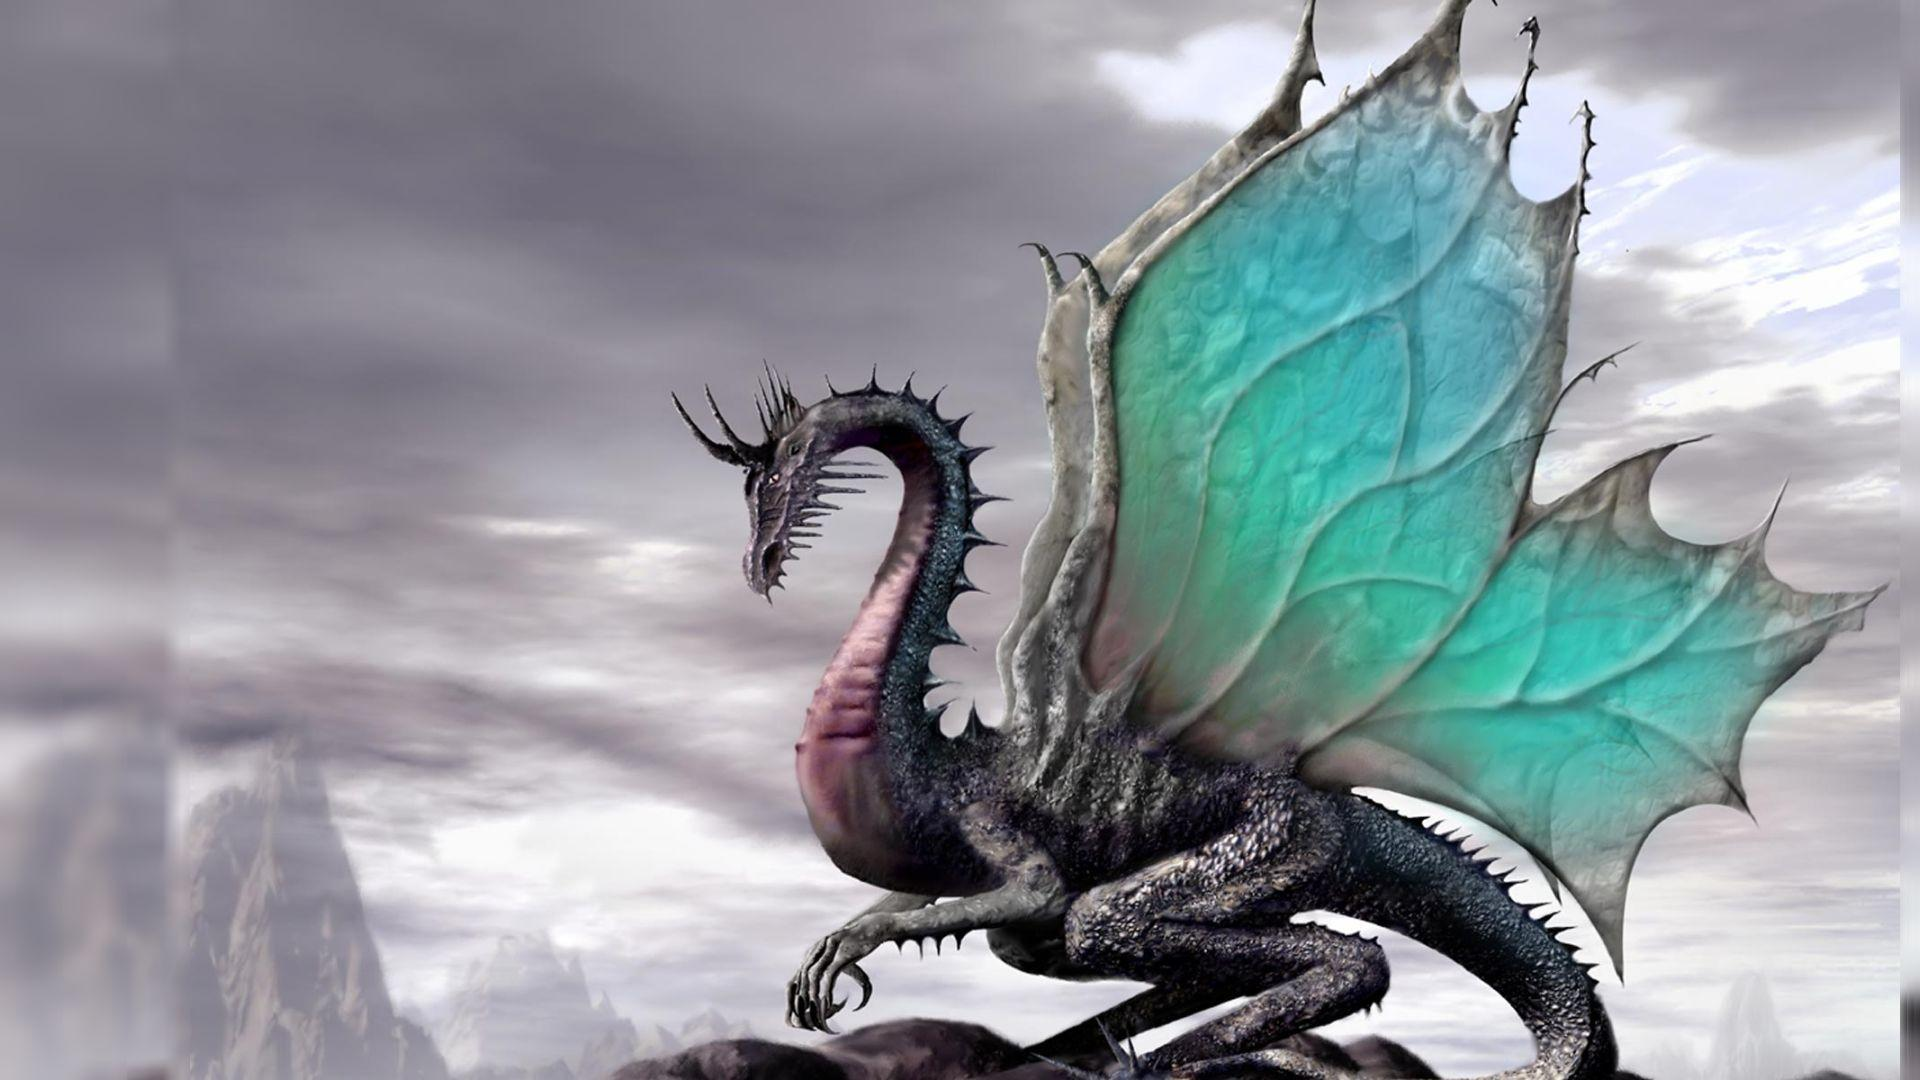 dragon wallpaper widescreen high resolution - photo #2